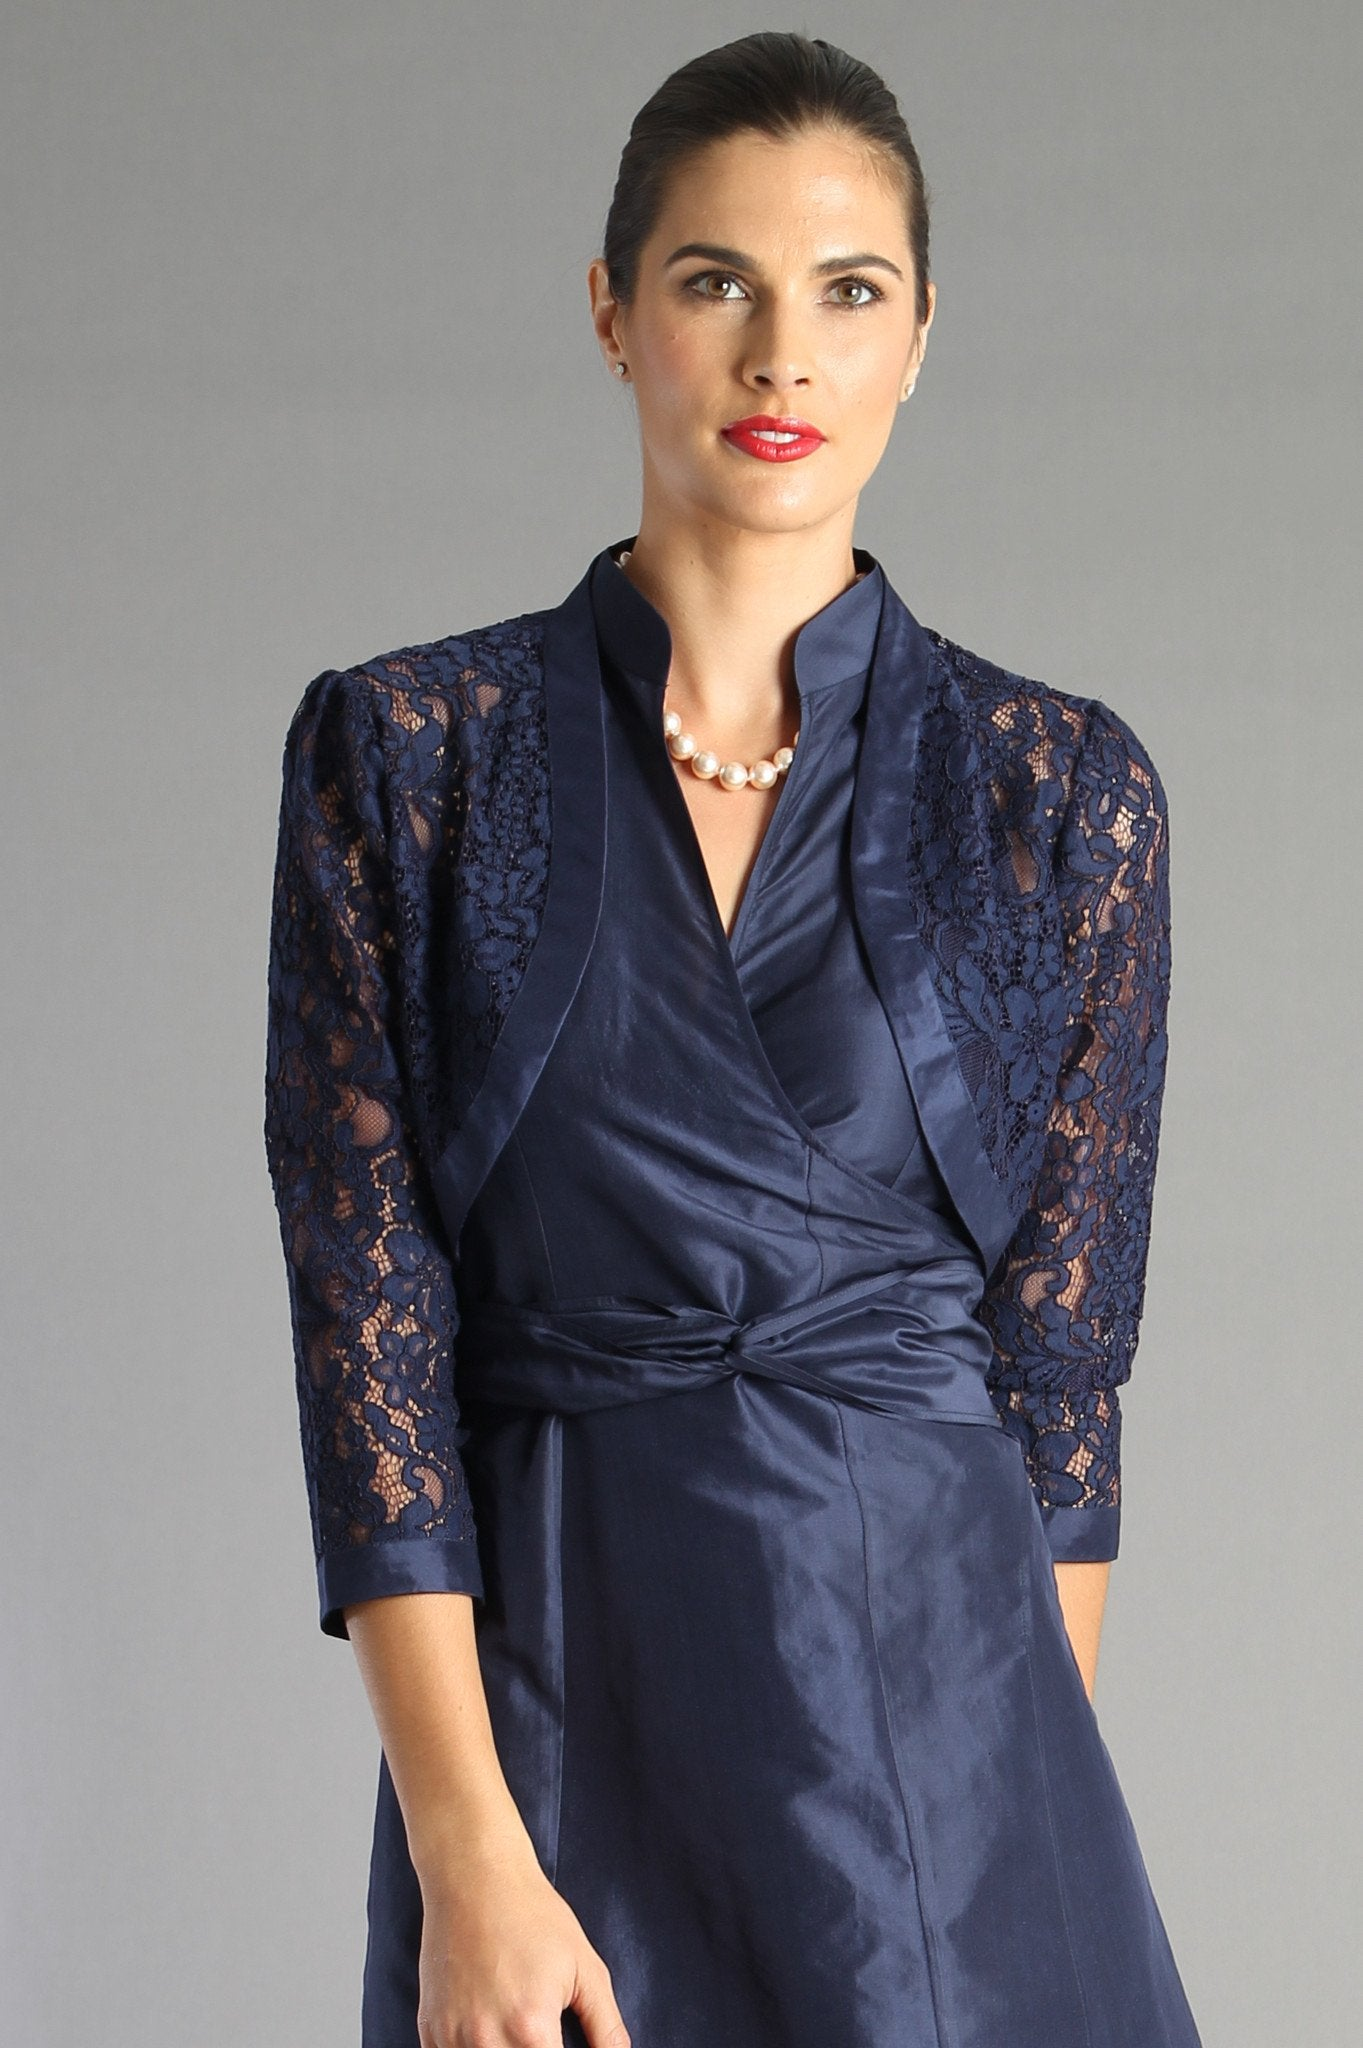 Lace Bolero - Navy for the Mother of the Bride / Groom